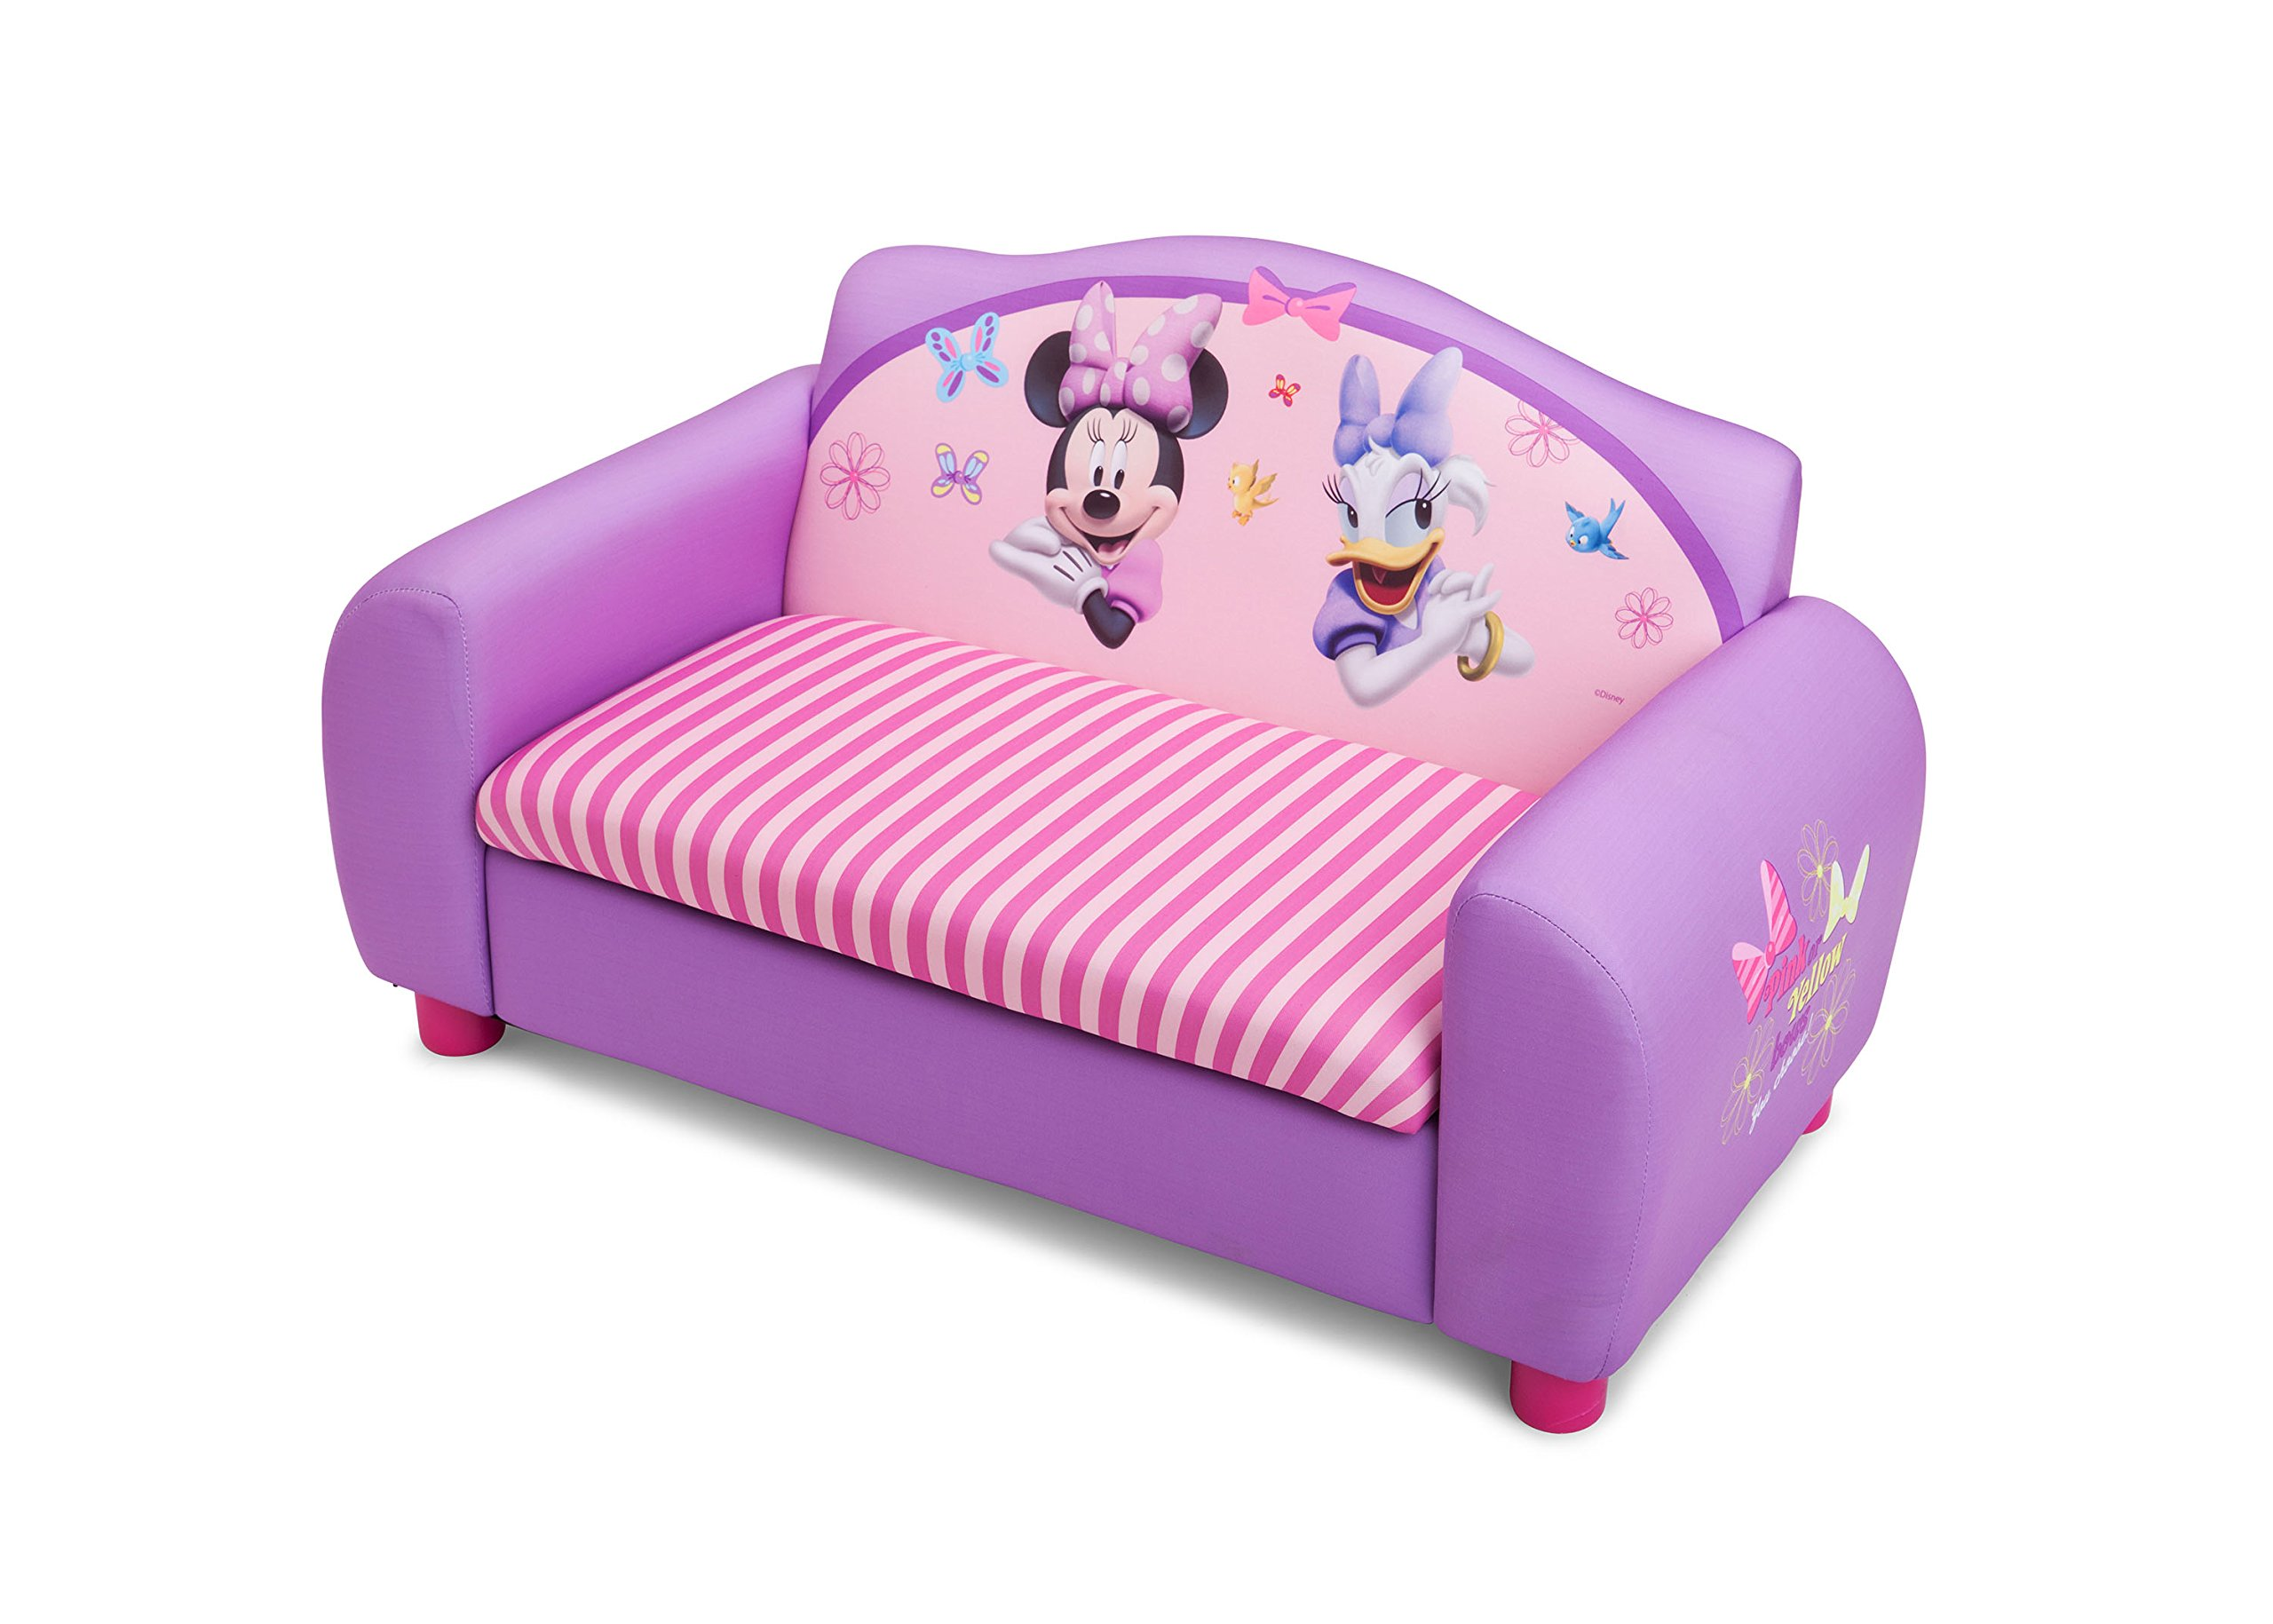 Marvelous Buy Delta Childrens Products Minnie Mouse Upholstered Sofa Pdpeps Interior Chair Design Pdpepsorg